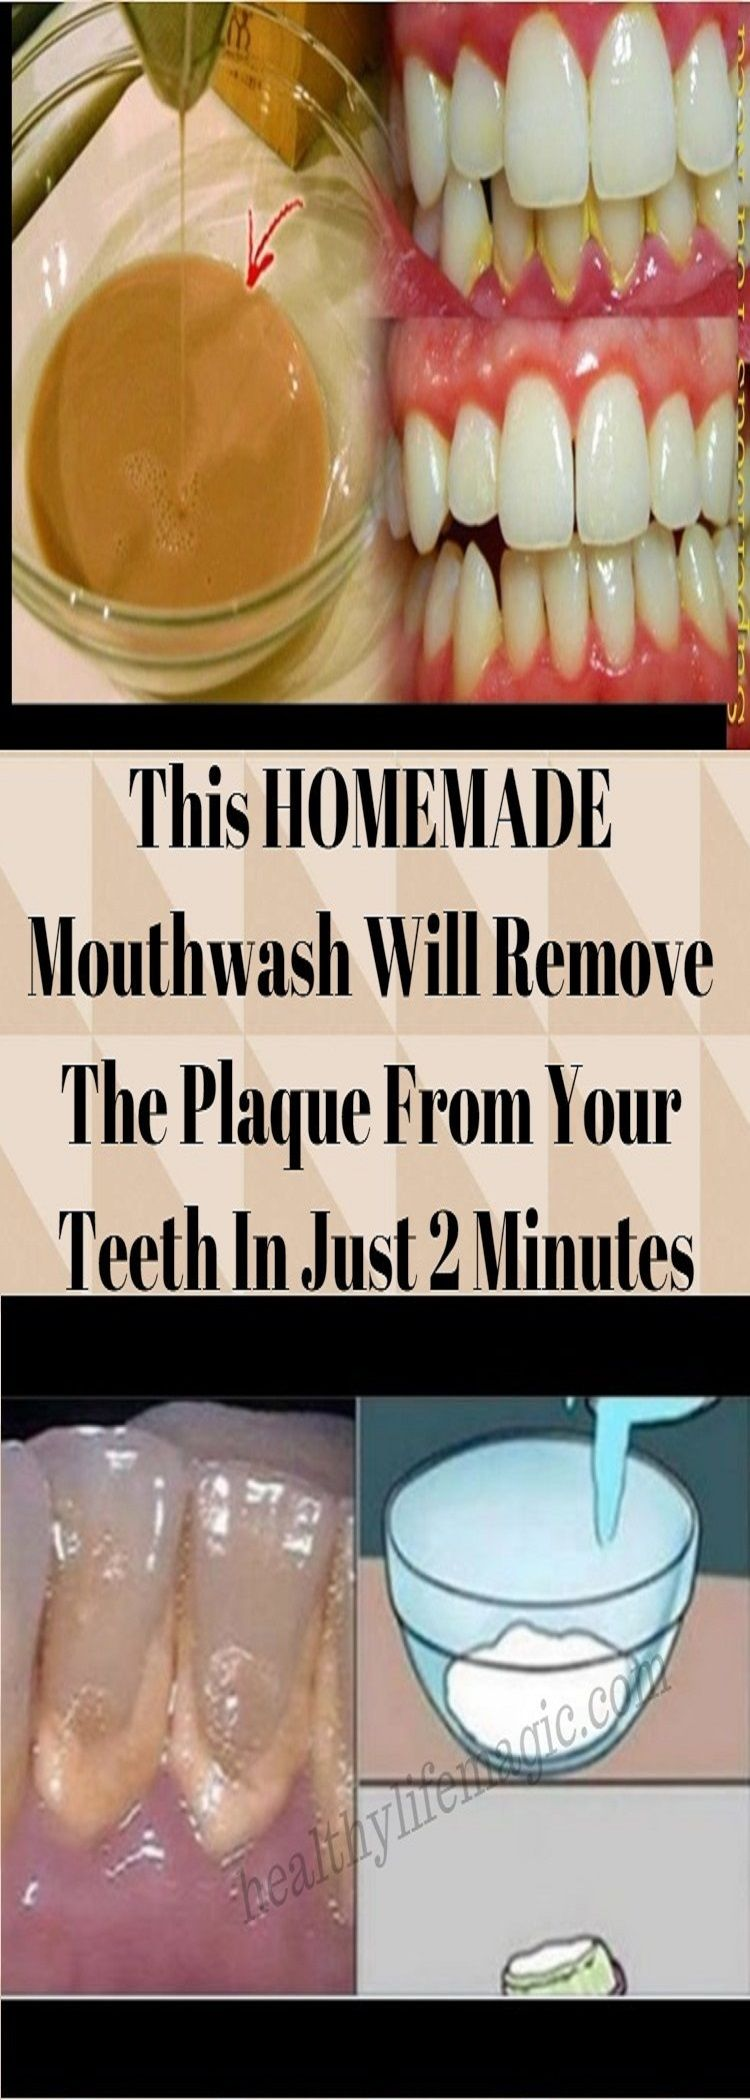 This HOMEMADE Mouthwash Will Remove The Plaque From Your Teeth In